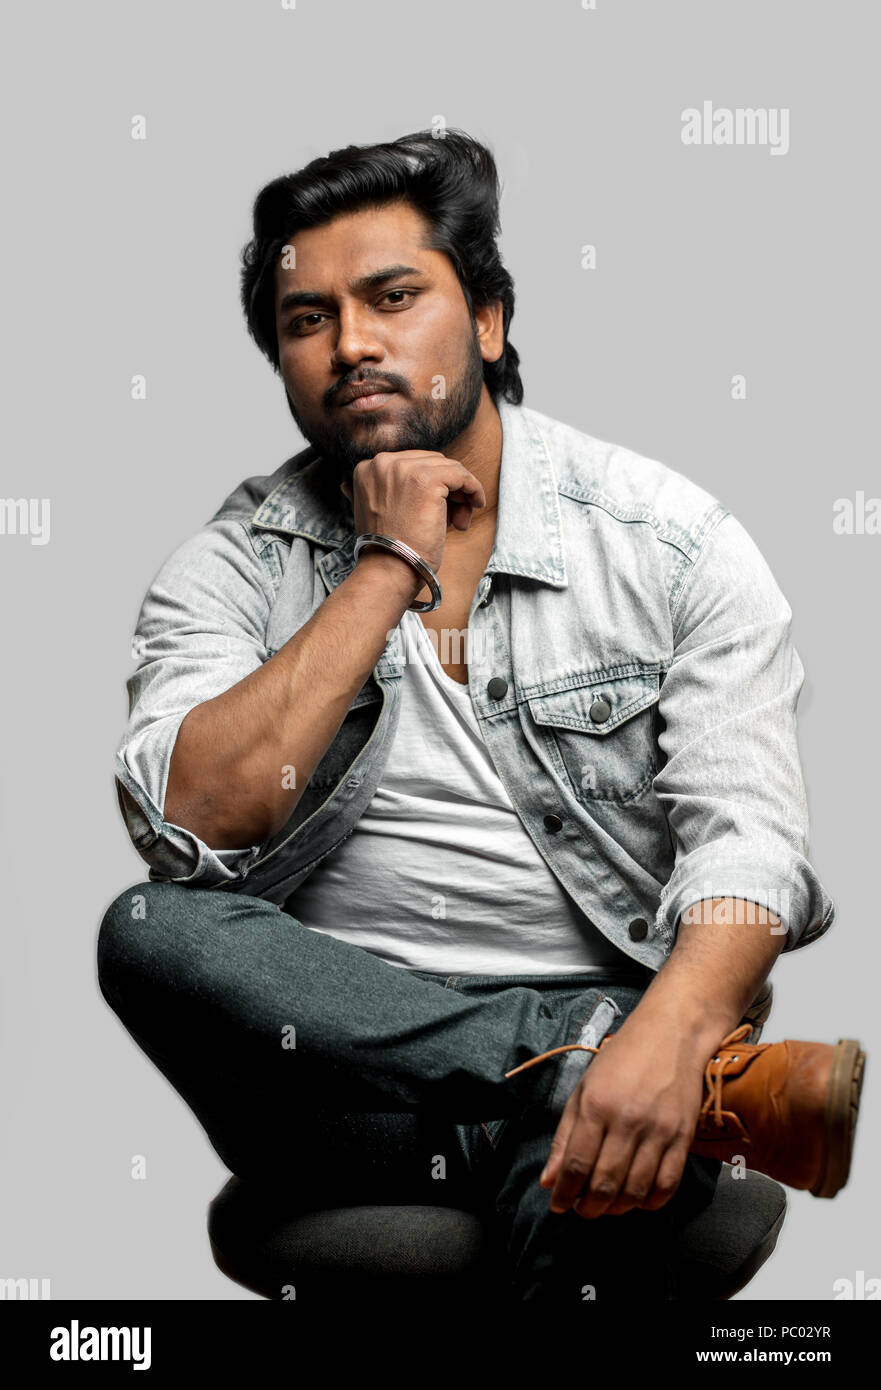 602b180593a indian guy sitting with pensive look. think about life. brutal serious  actor. sporty mman in casual stylish outfit